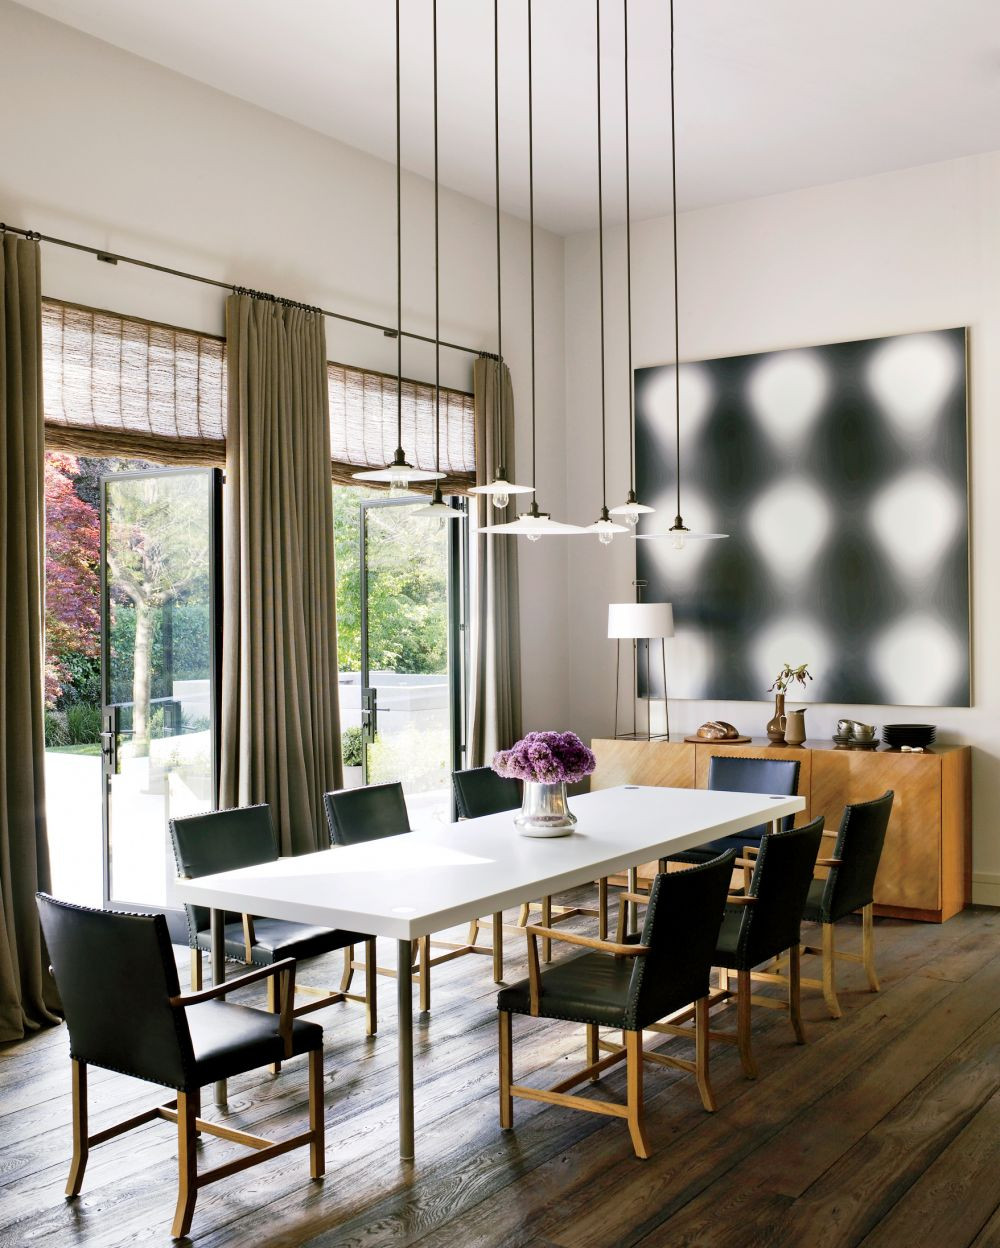 Best ideas about Contemporary Dining Room . Save or Pin Contemporary Dining Room by Steven Volpe Design by Now.